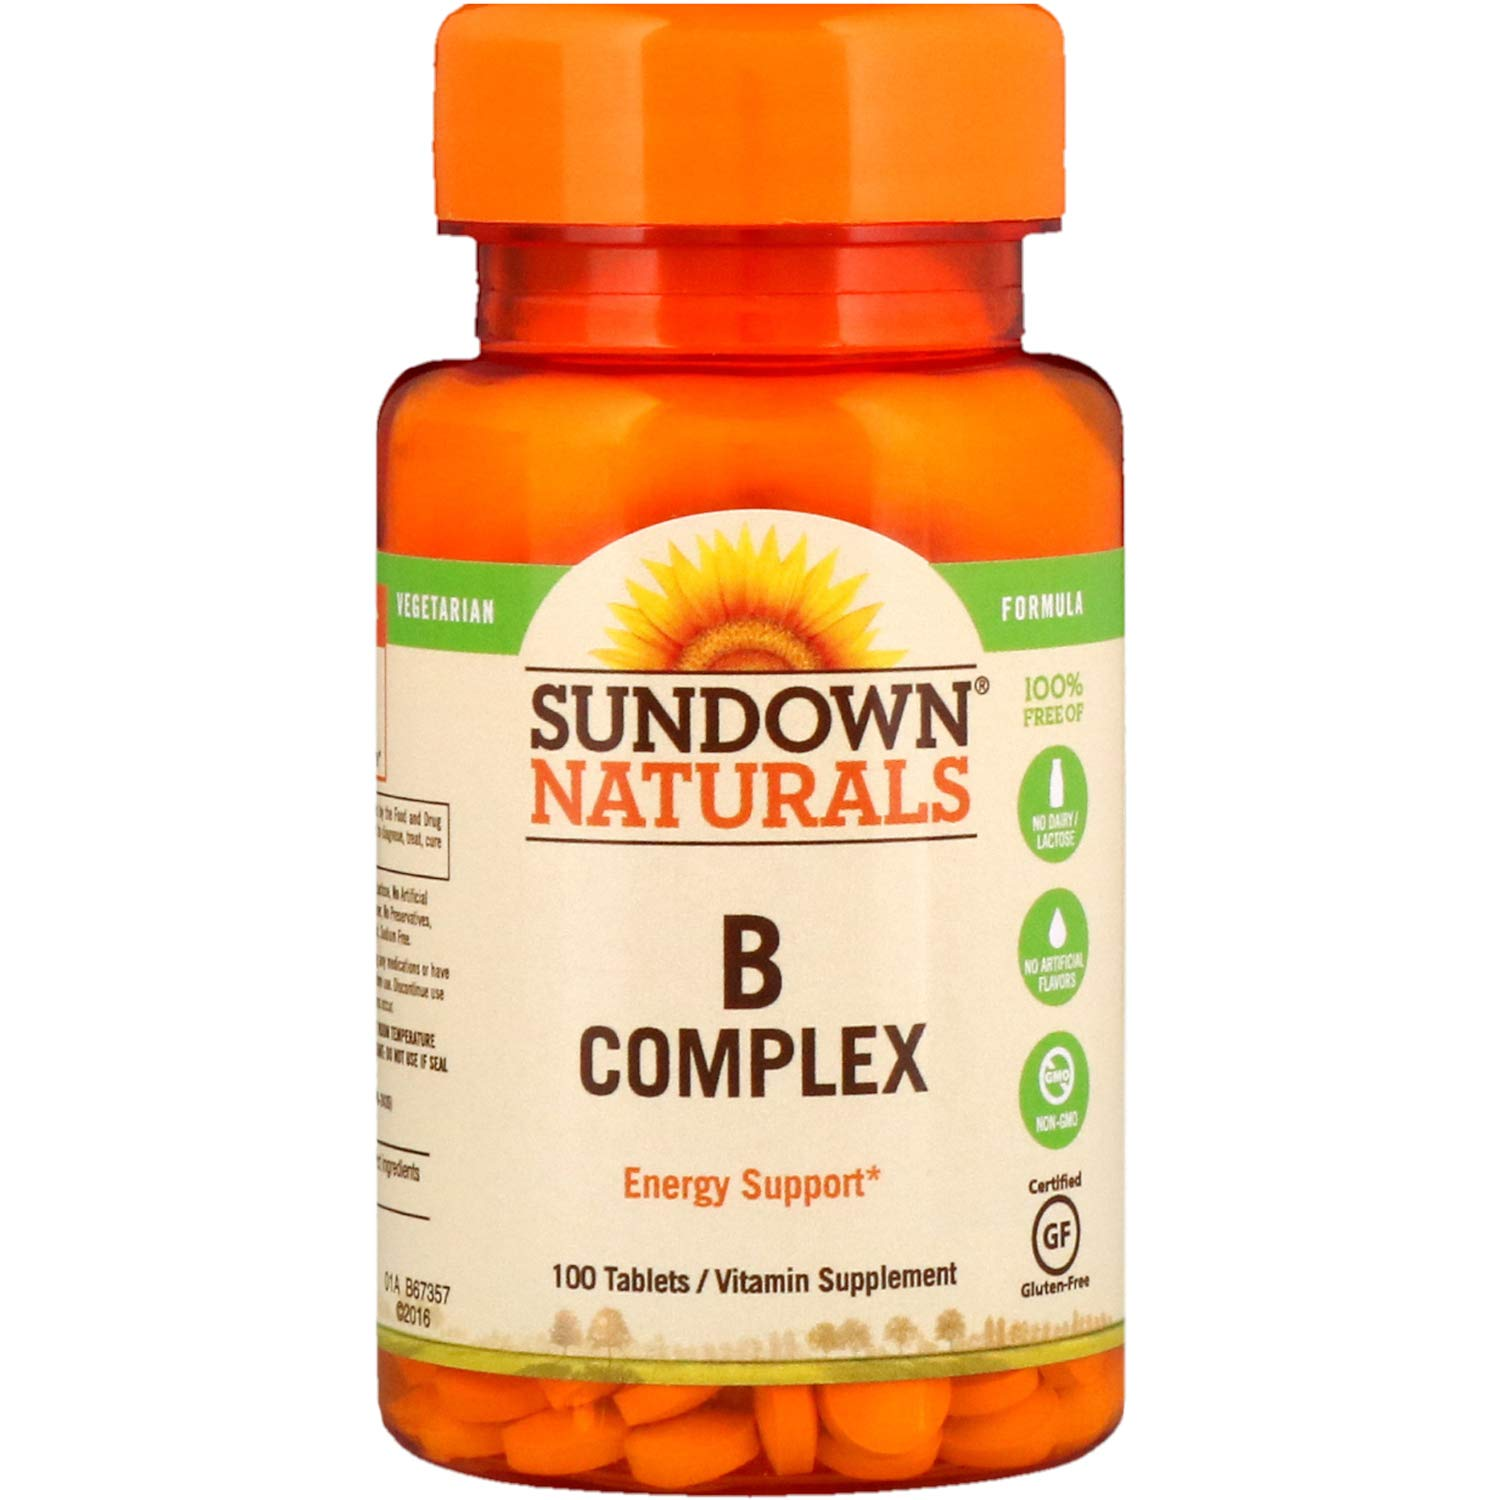 Carlson – B Compleet 50, Balanced Vitamin B Complex, Energy Production, Cellular Support Optimal Wellness, 250 tablets